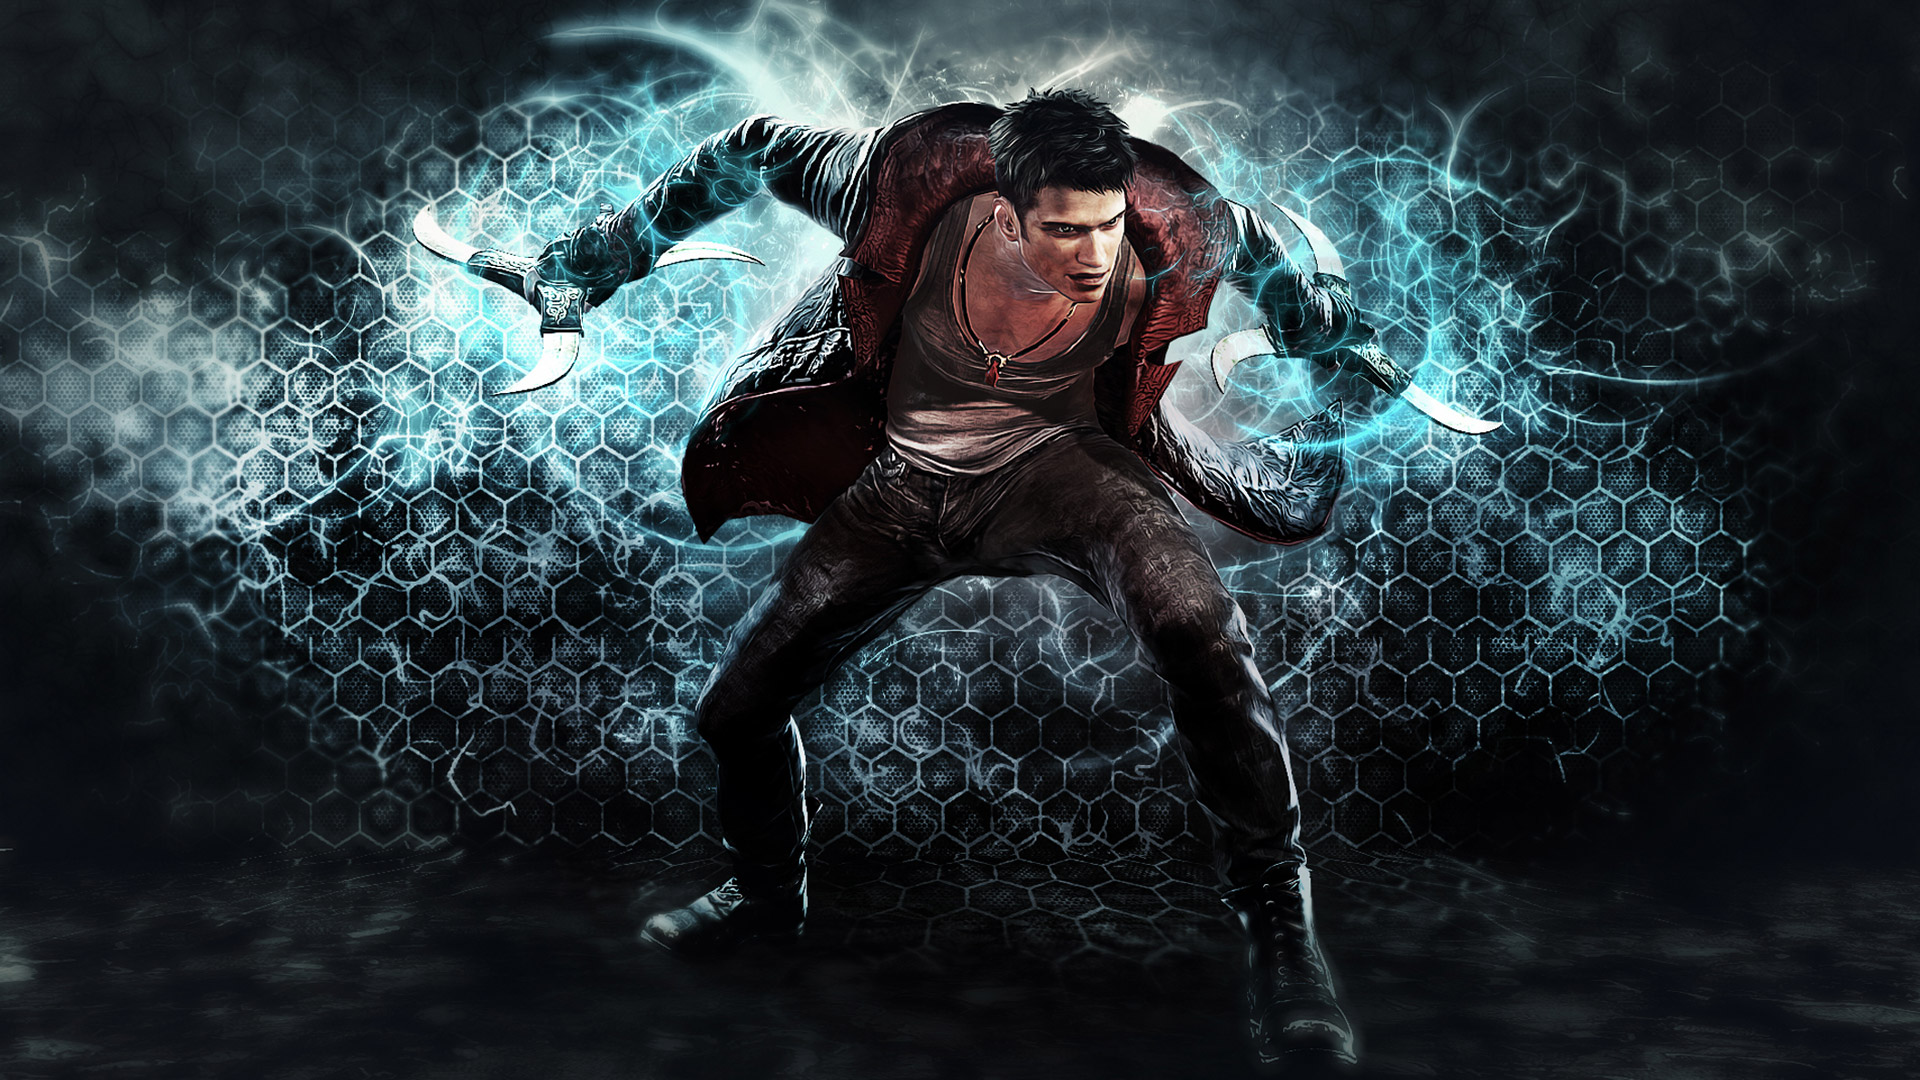 Free DmC: Devil May Cry Wallpaper in 1920x1080